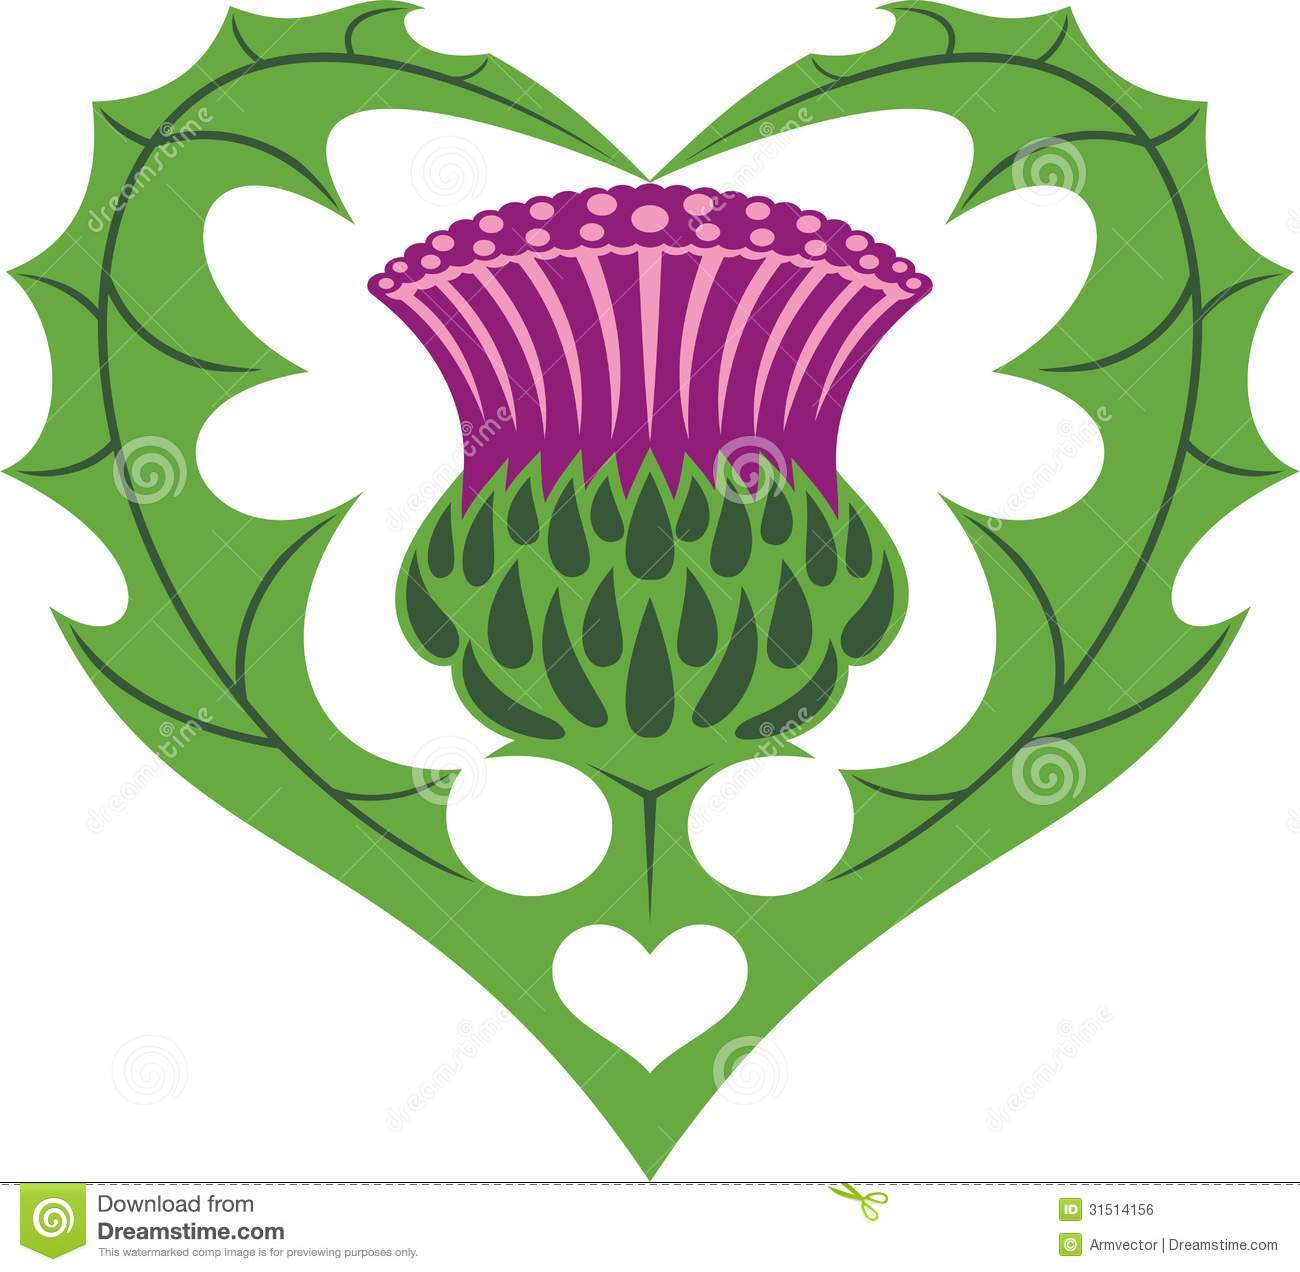 1000+ images about Scottish Thistles on Pinterest.